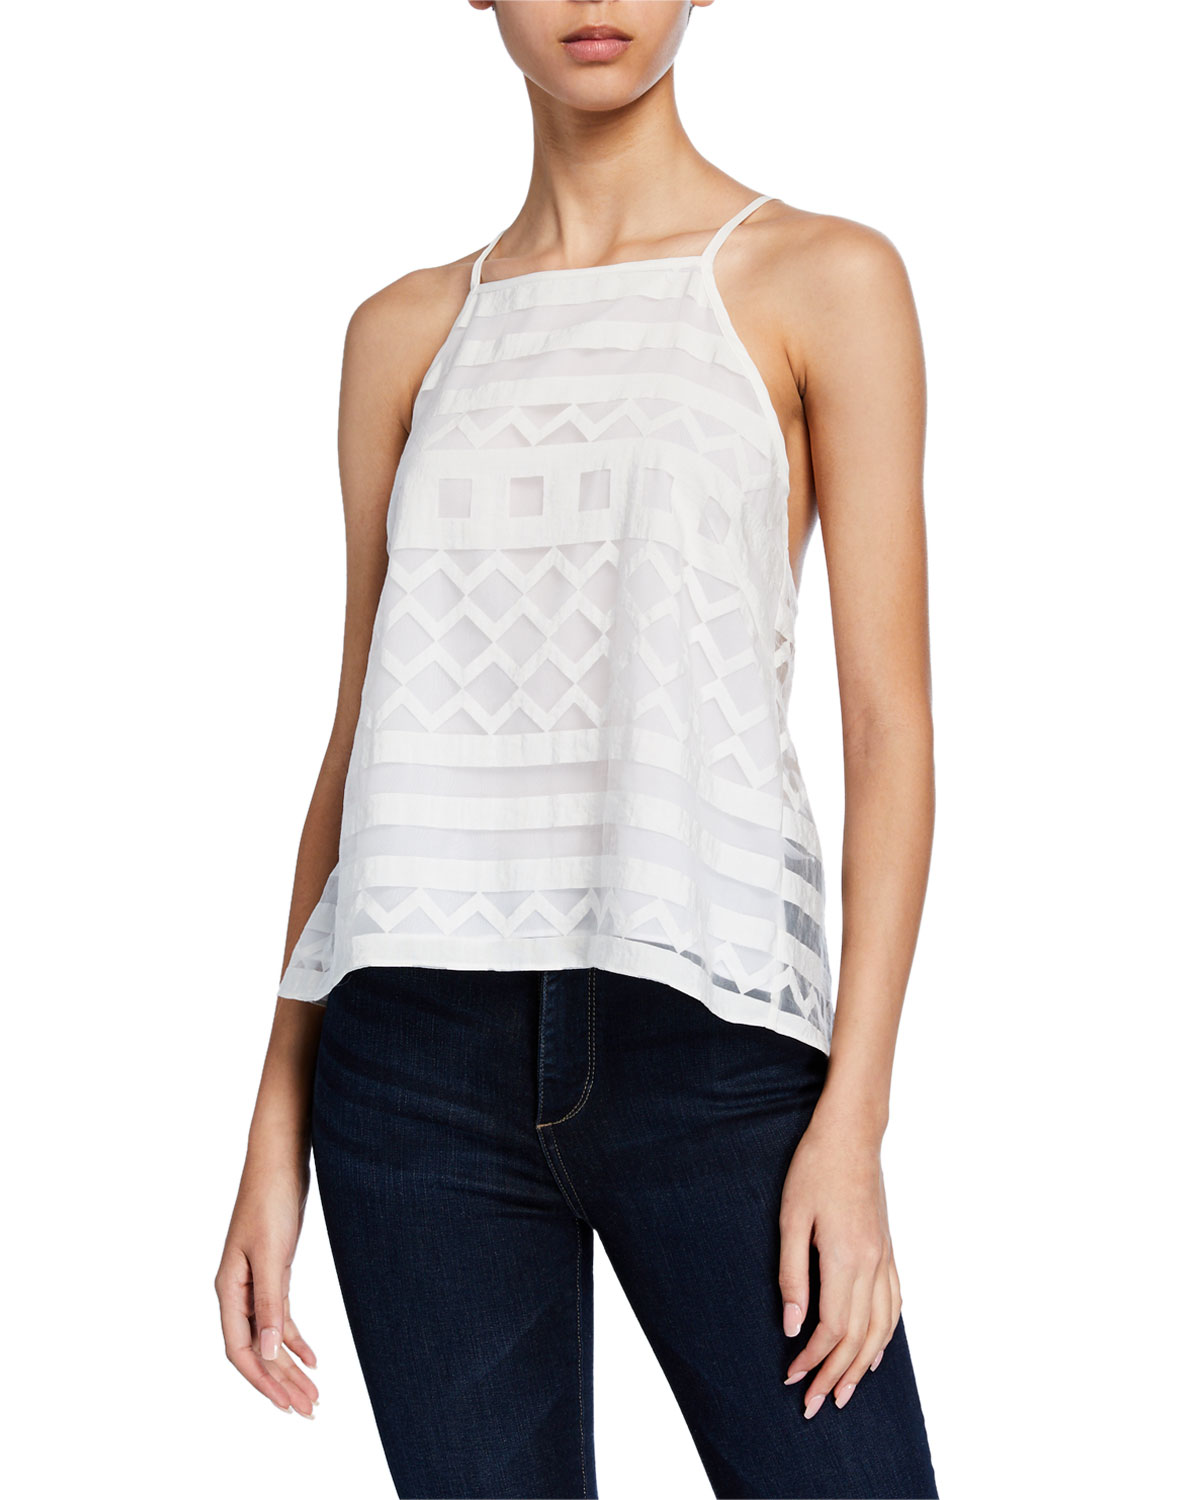 Milly Tops HIGH-LOW TRAPEZE CAMISOLE